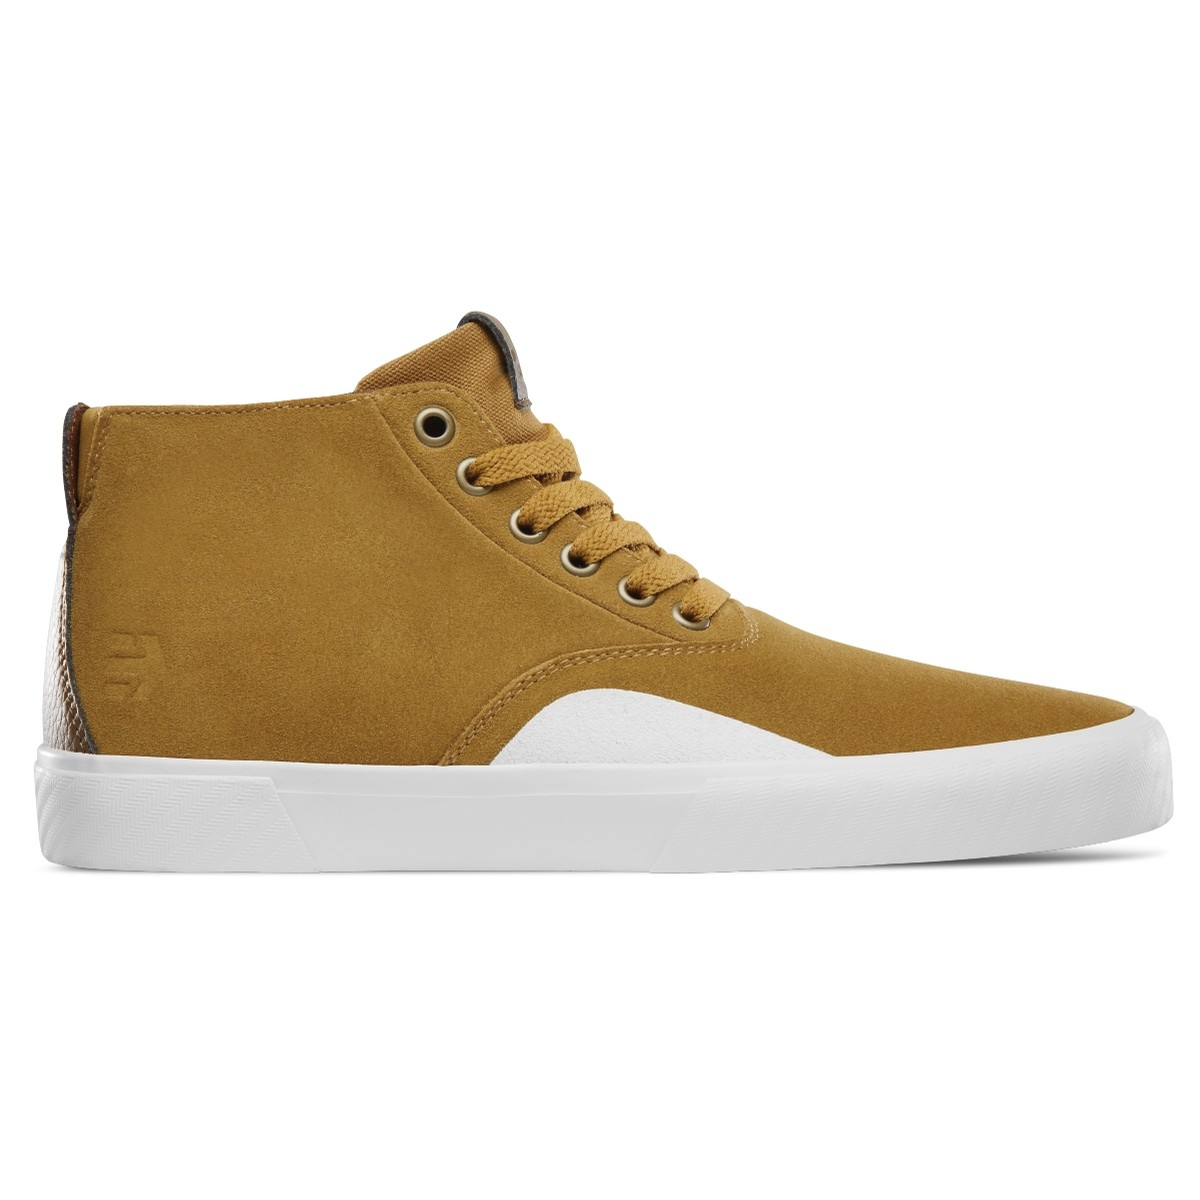 Jameson Vulc MT (Tan/Brown/White)